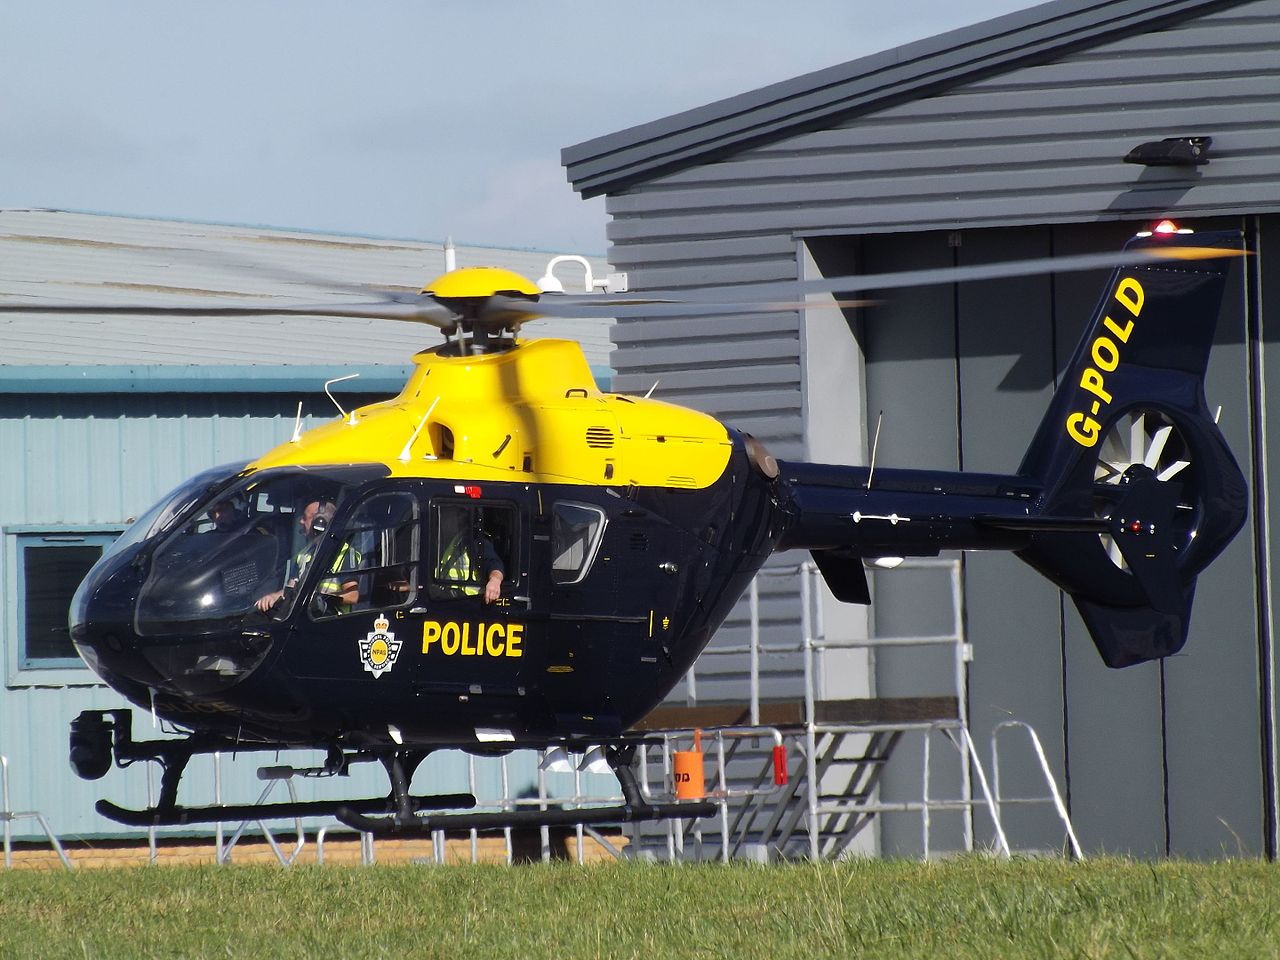 File:G-POLD Eurocopter EC135 Helicopter National Police ...